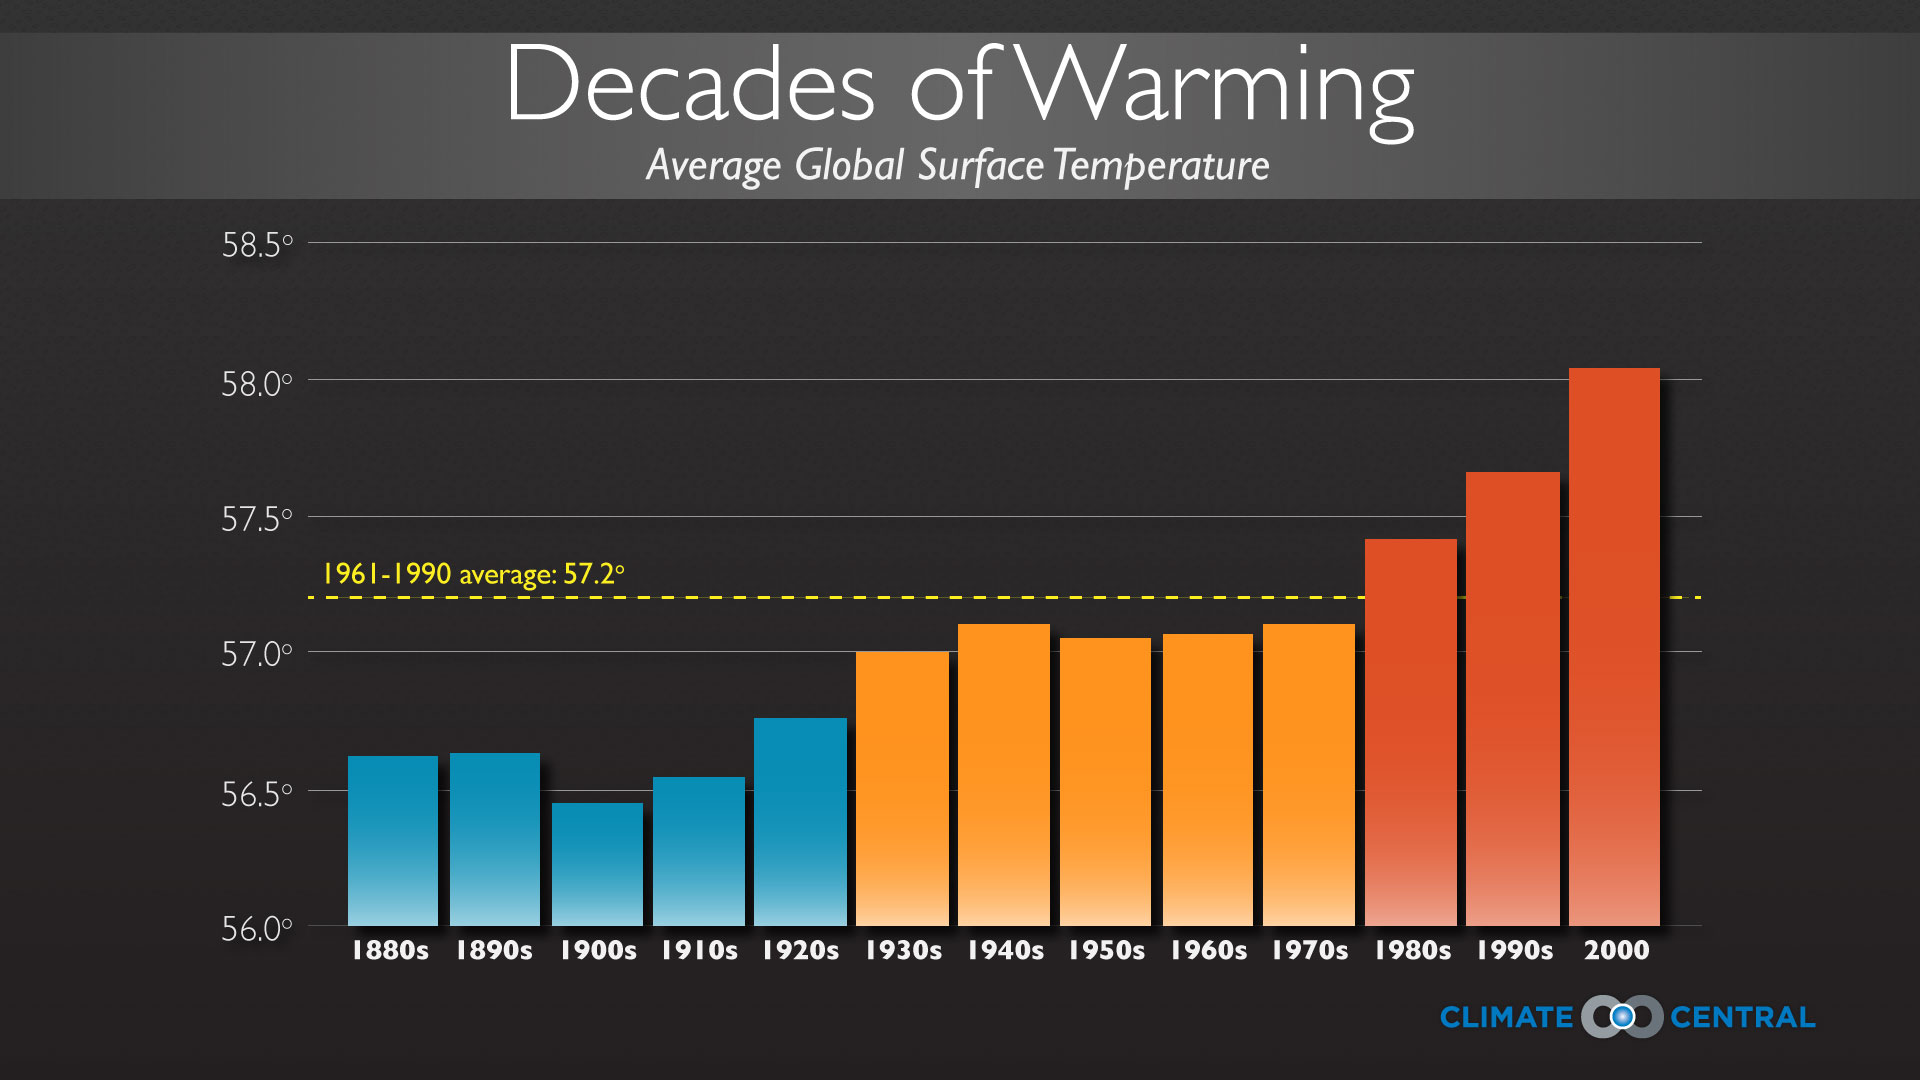 Decades of warming